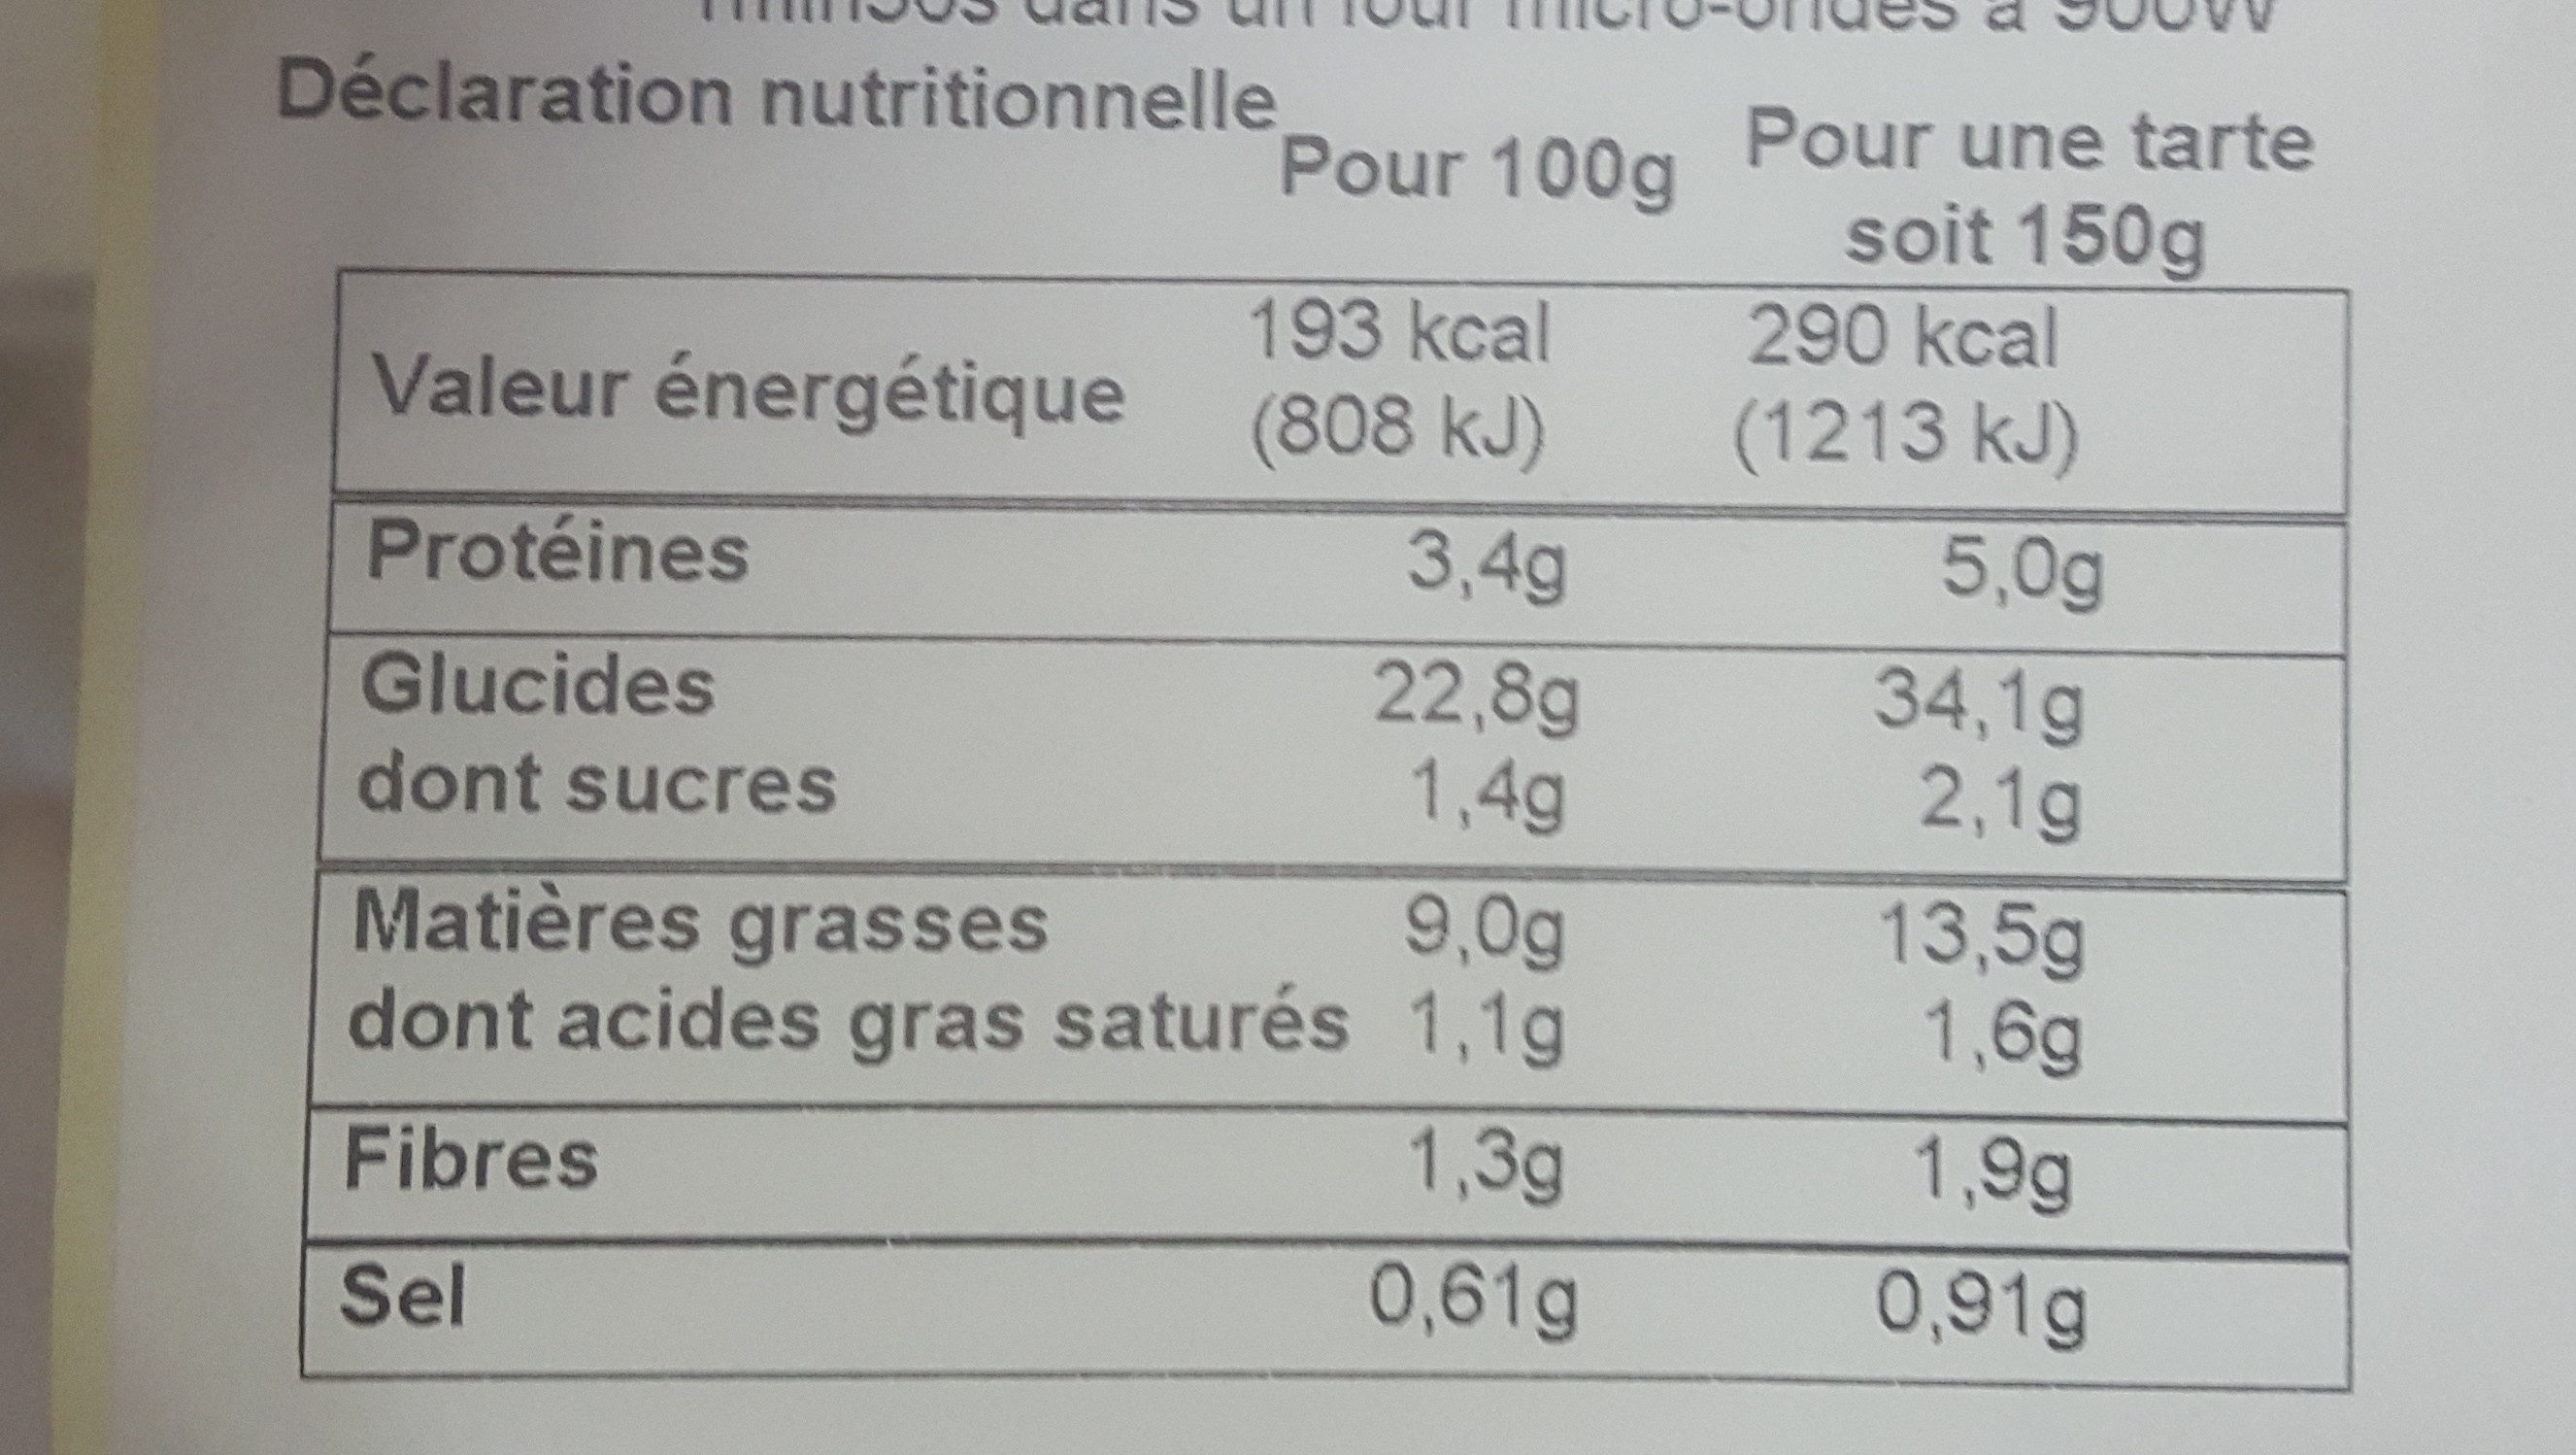 Tarte compotee d'aubergines aux olives - Nutrition facts